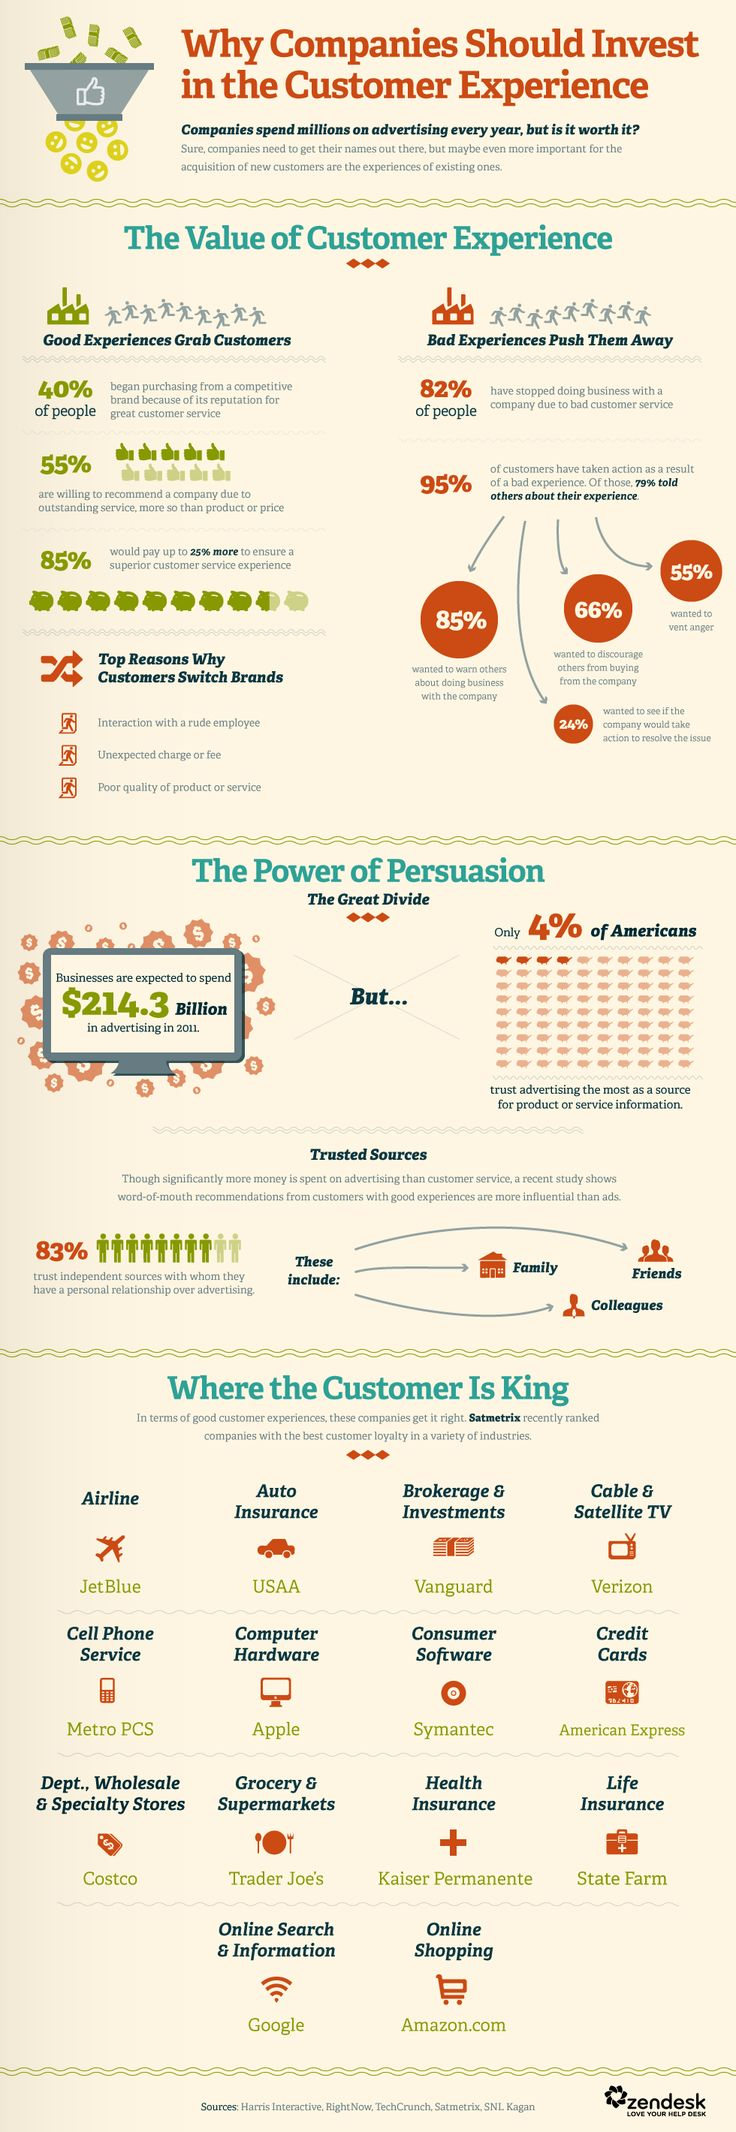 Importance of Customer Experience - Infographic: Customer Experience Is More Important Than Advertising